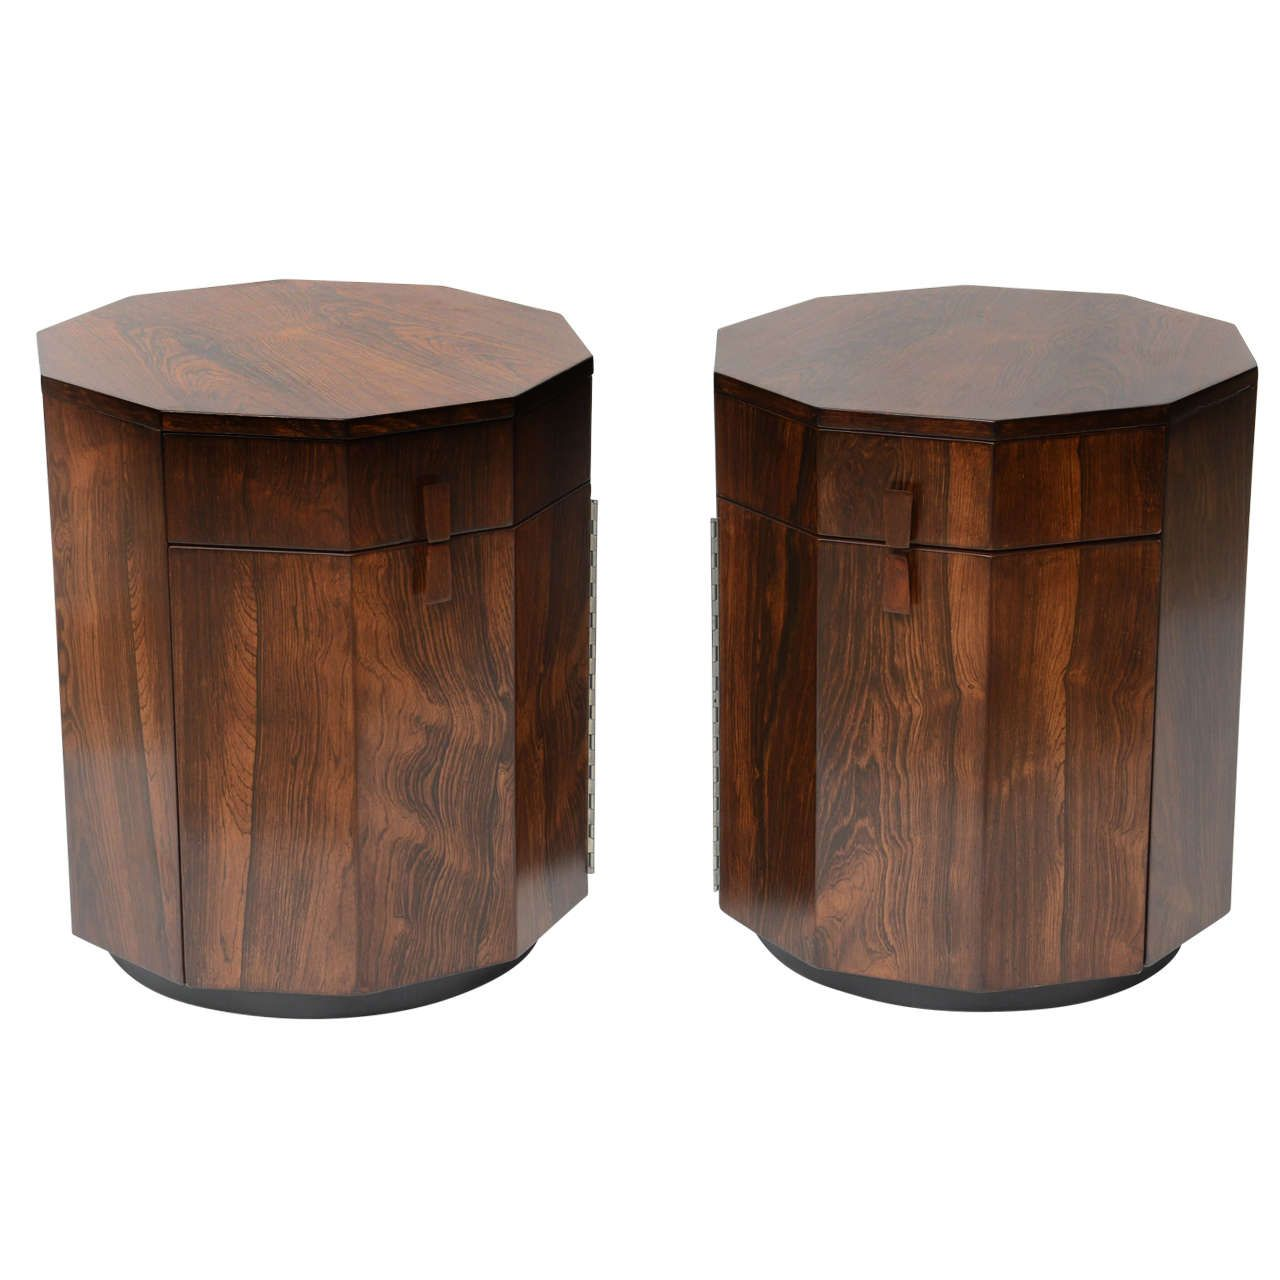 Pair of Harvey Probber Rosewood End Tables with Storage Space